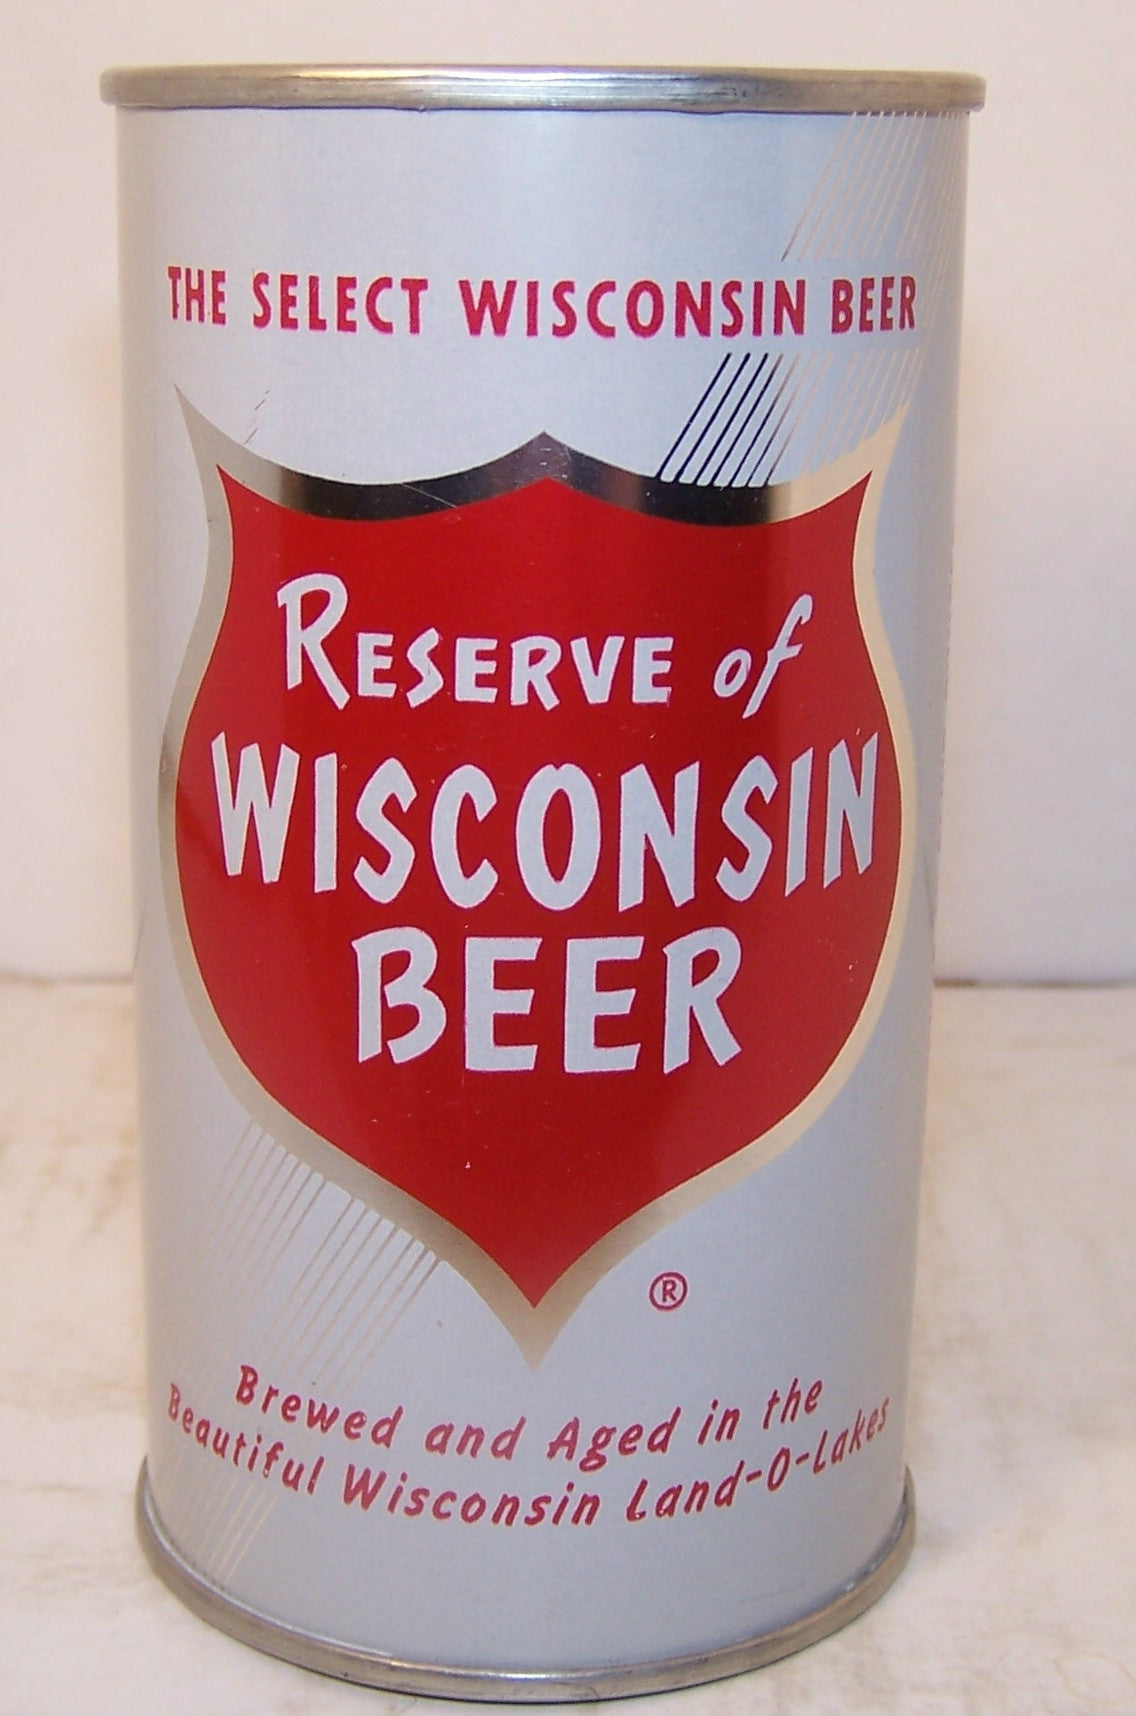 Reserve of Wisconsin Beer, USBC 122-27, Grade A1+ Sold on 07/15/17